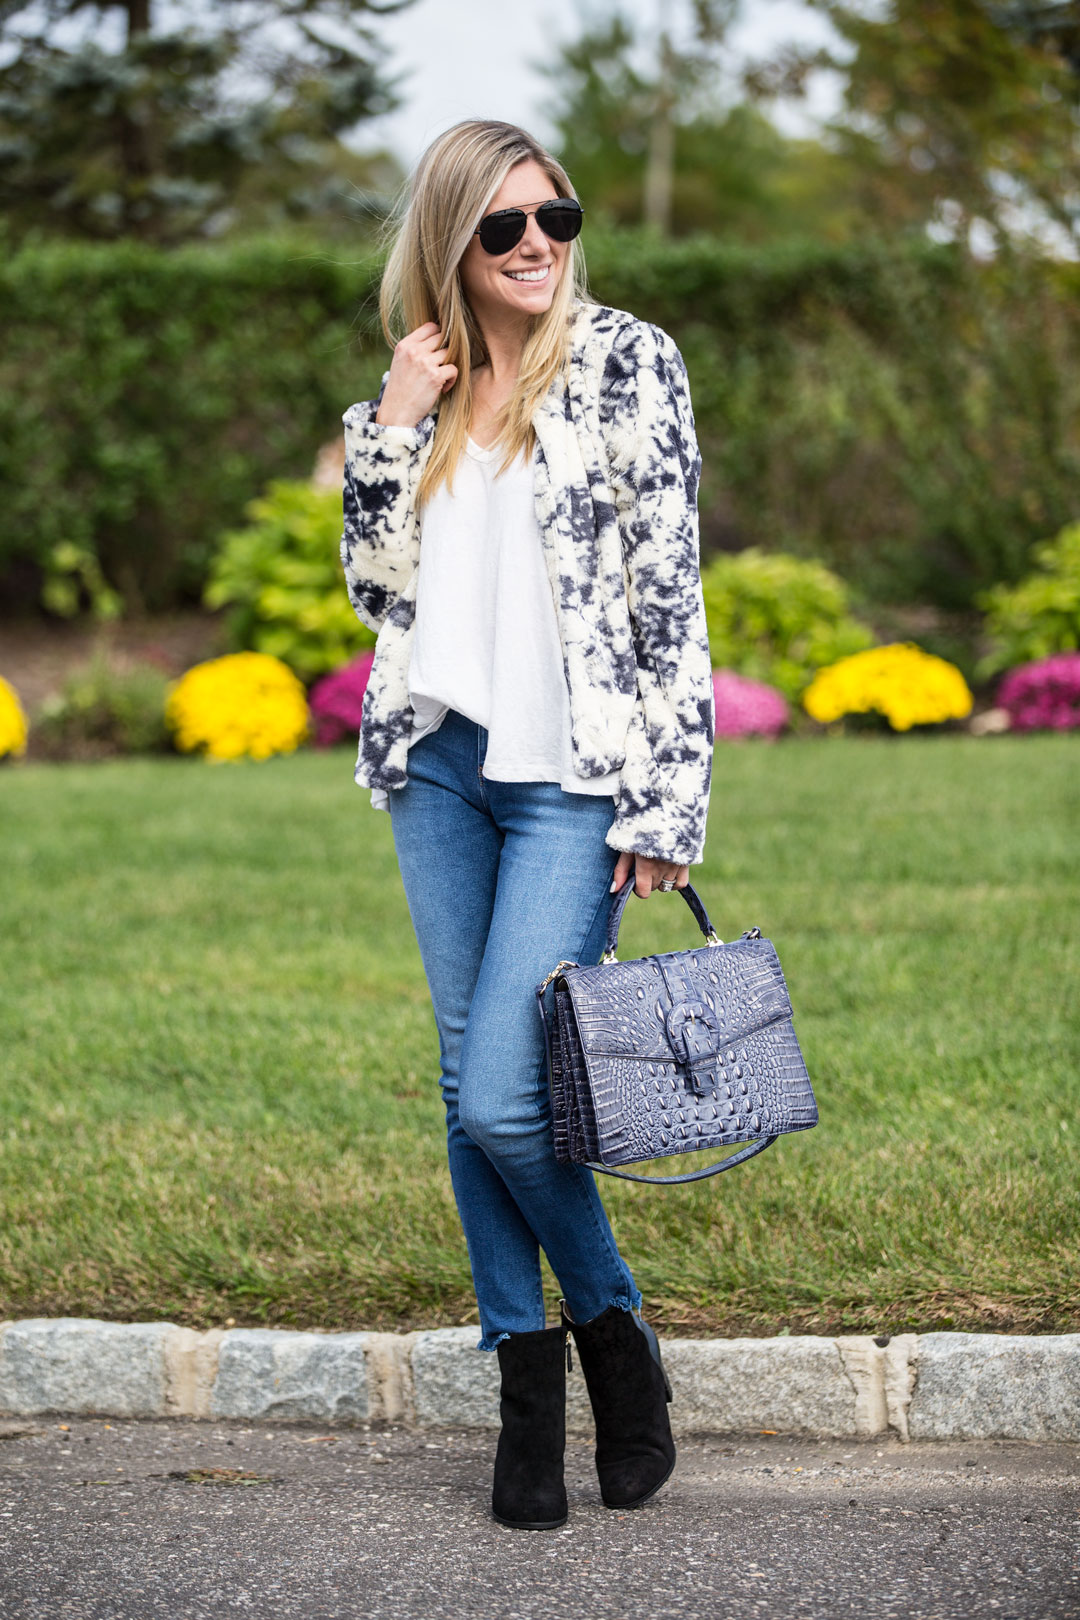 the perfect fall outfit for brunch